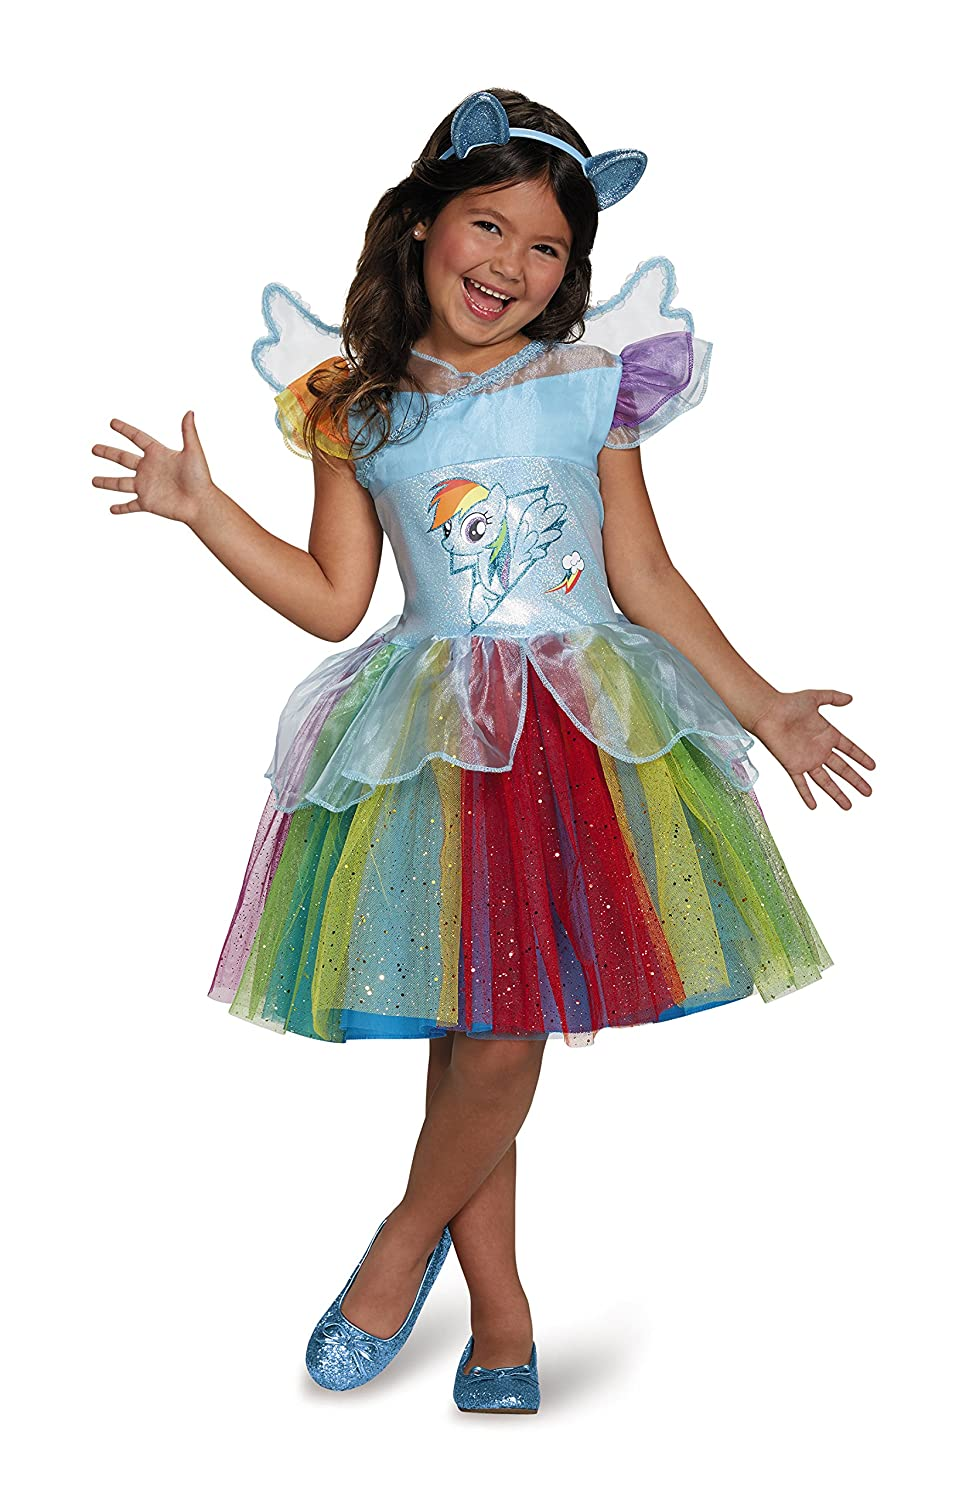 Disguise Costumes Rainbow Dash Tutu Deluxe My Little Pony Costume, Medium/7-8 97345K